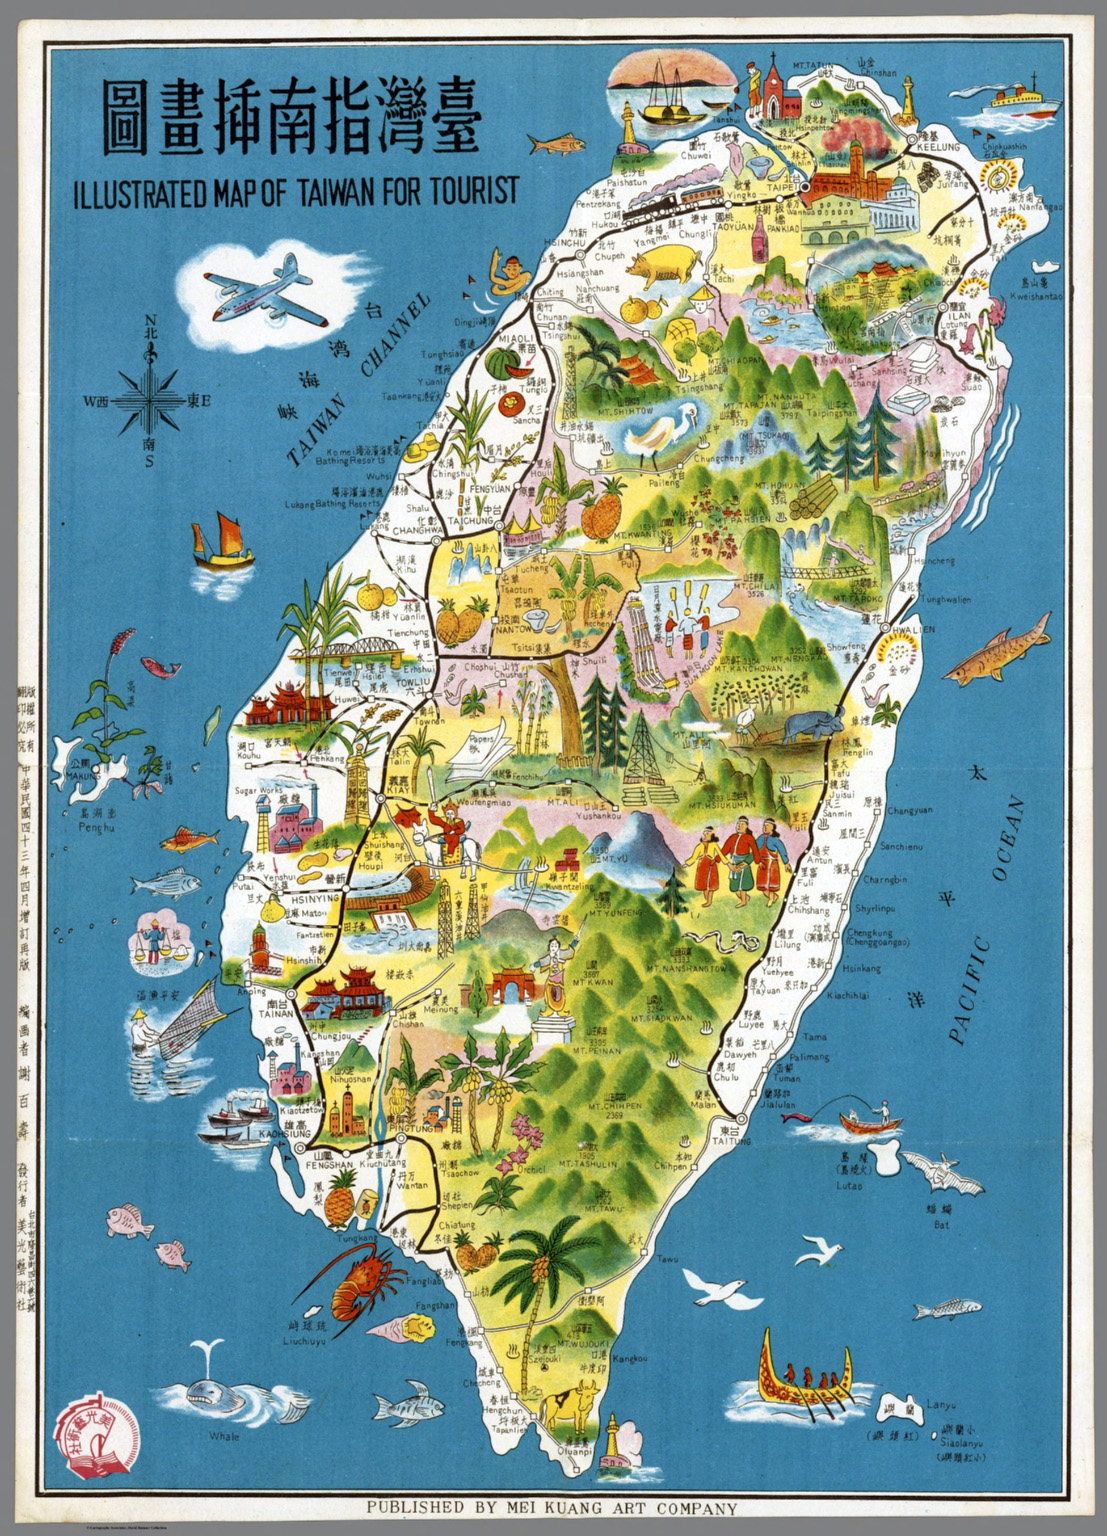 Maps of Taiwan Detailed map of Taiwan in English Tourist map of